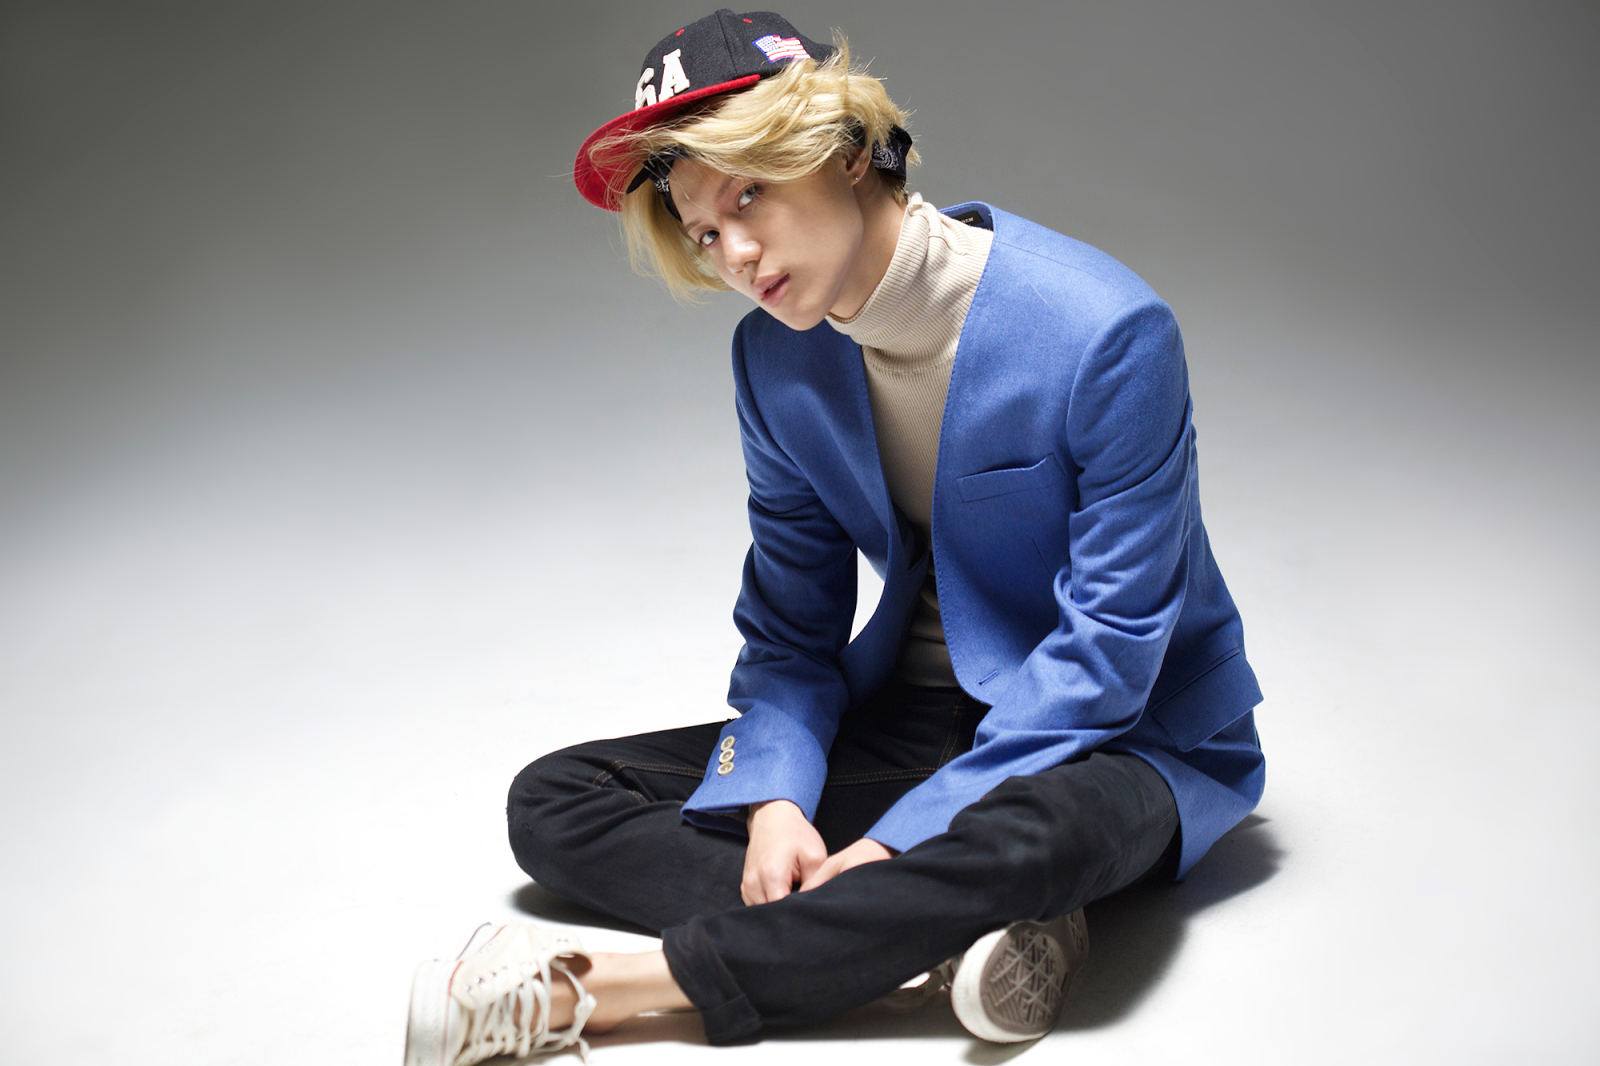 twenty2 blog: SHINee's Taemin's